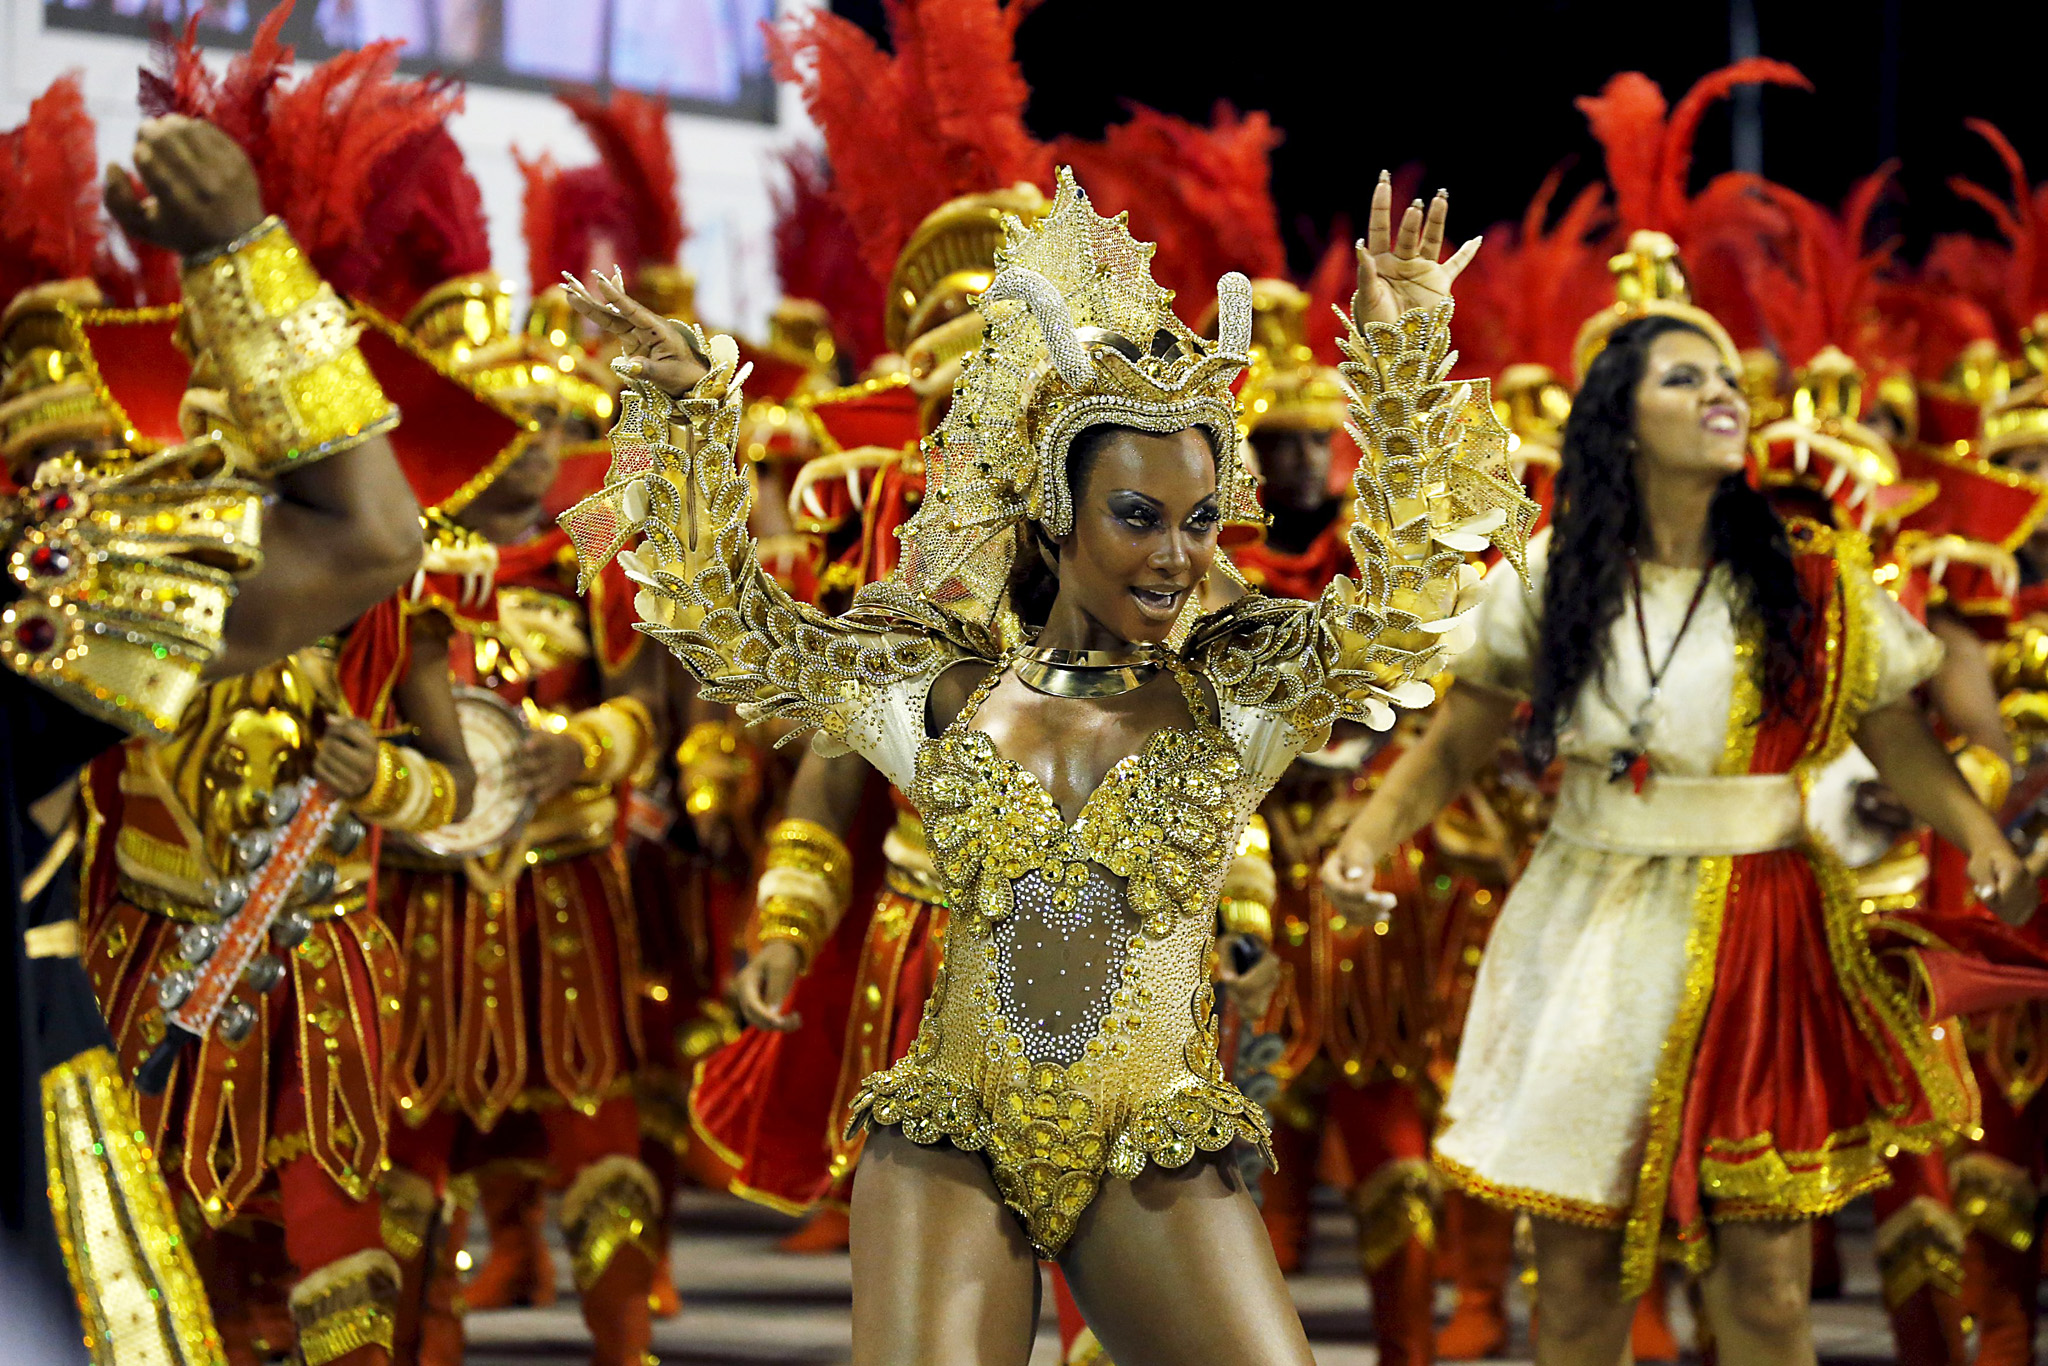 "Estacio de Sa samba schooll's Drum Queen Luana Bandeira performs during the carnival parade at the Sambadrome in Rio de Janeiro's Sambadrome...REFILE - CORRECTING TYPO IN ""CARNIVAL""Estacio de Sa samba schooll's Drum Queen Luana Bandeira performs during the carnival parade at the Sambadrome in Rio de Janeiro's Sambadrome February 7, 2016.   REUTERS/Sergio Moraes"